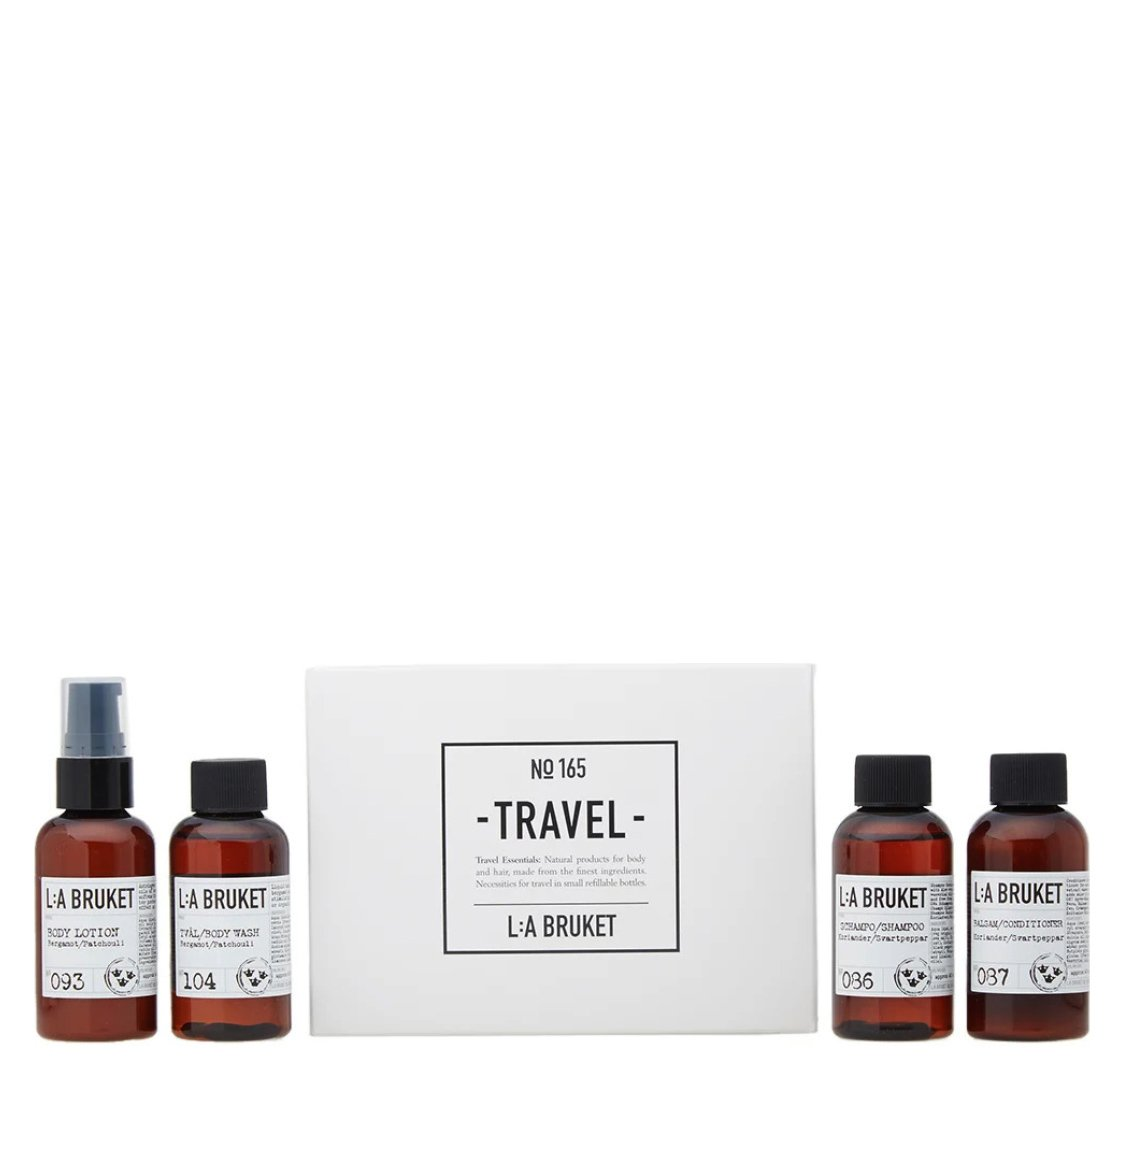 LA Bruket 165 Travel Kit 4 x 60ml